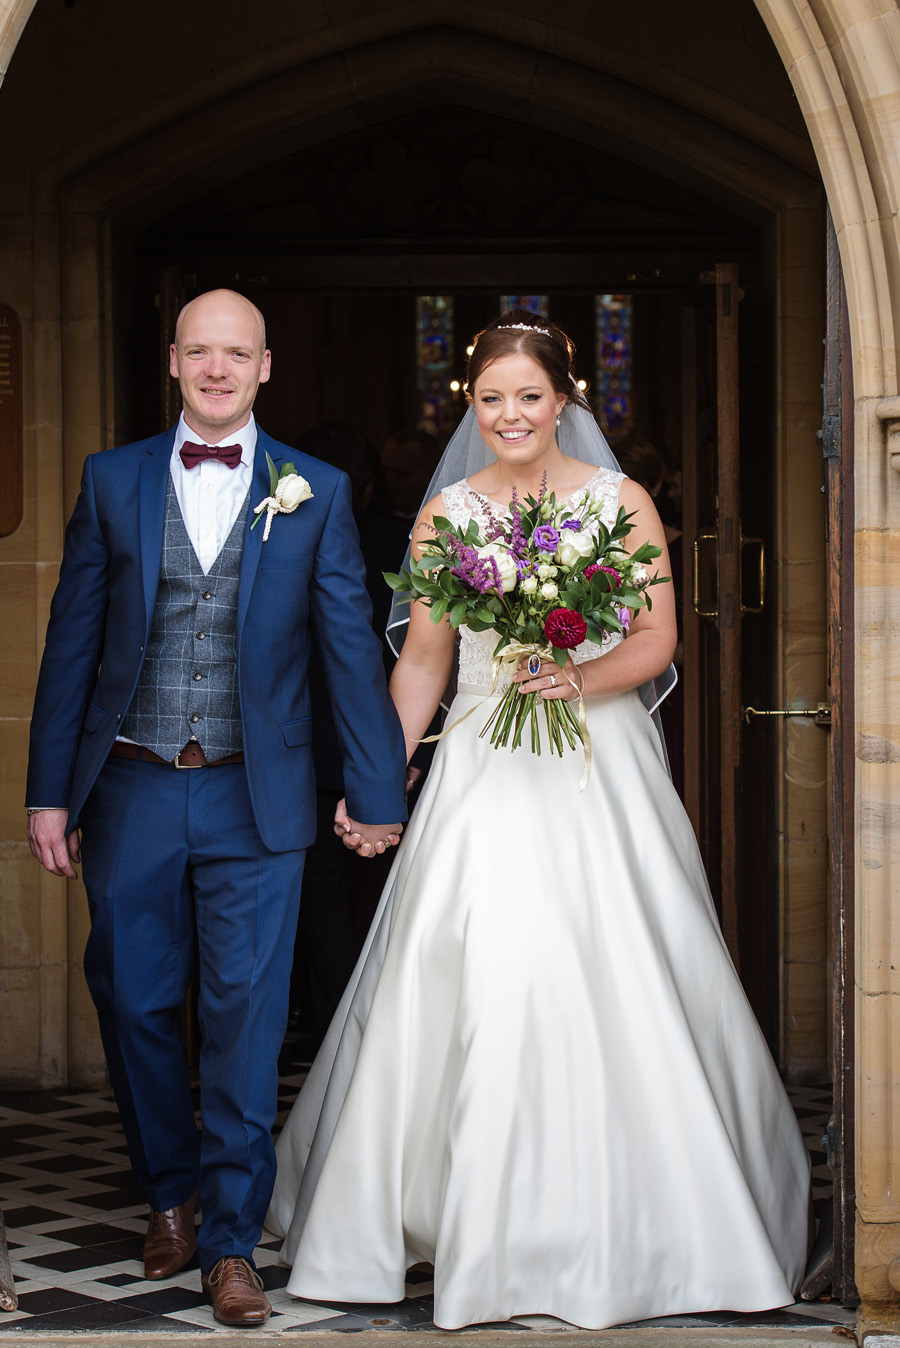 Stunning real wedding at Salomons Estate, images by Penny Young Photography (13)